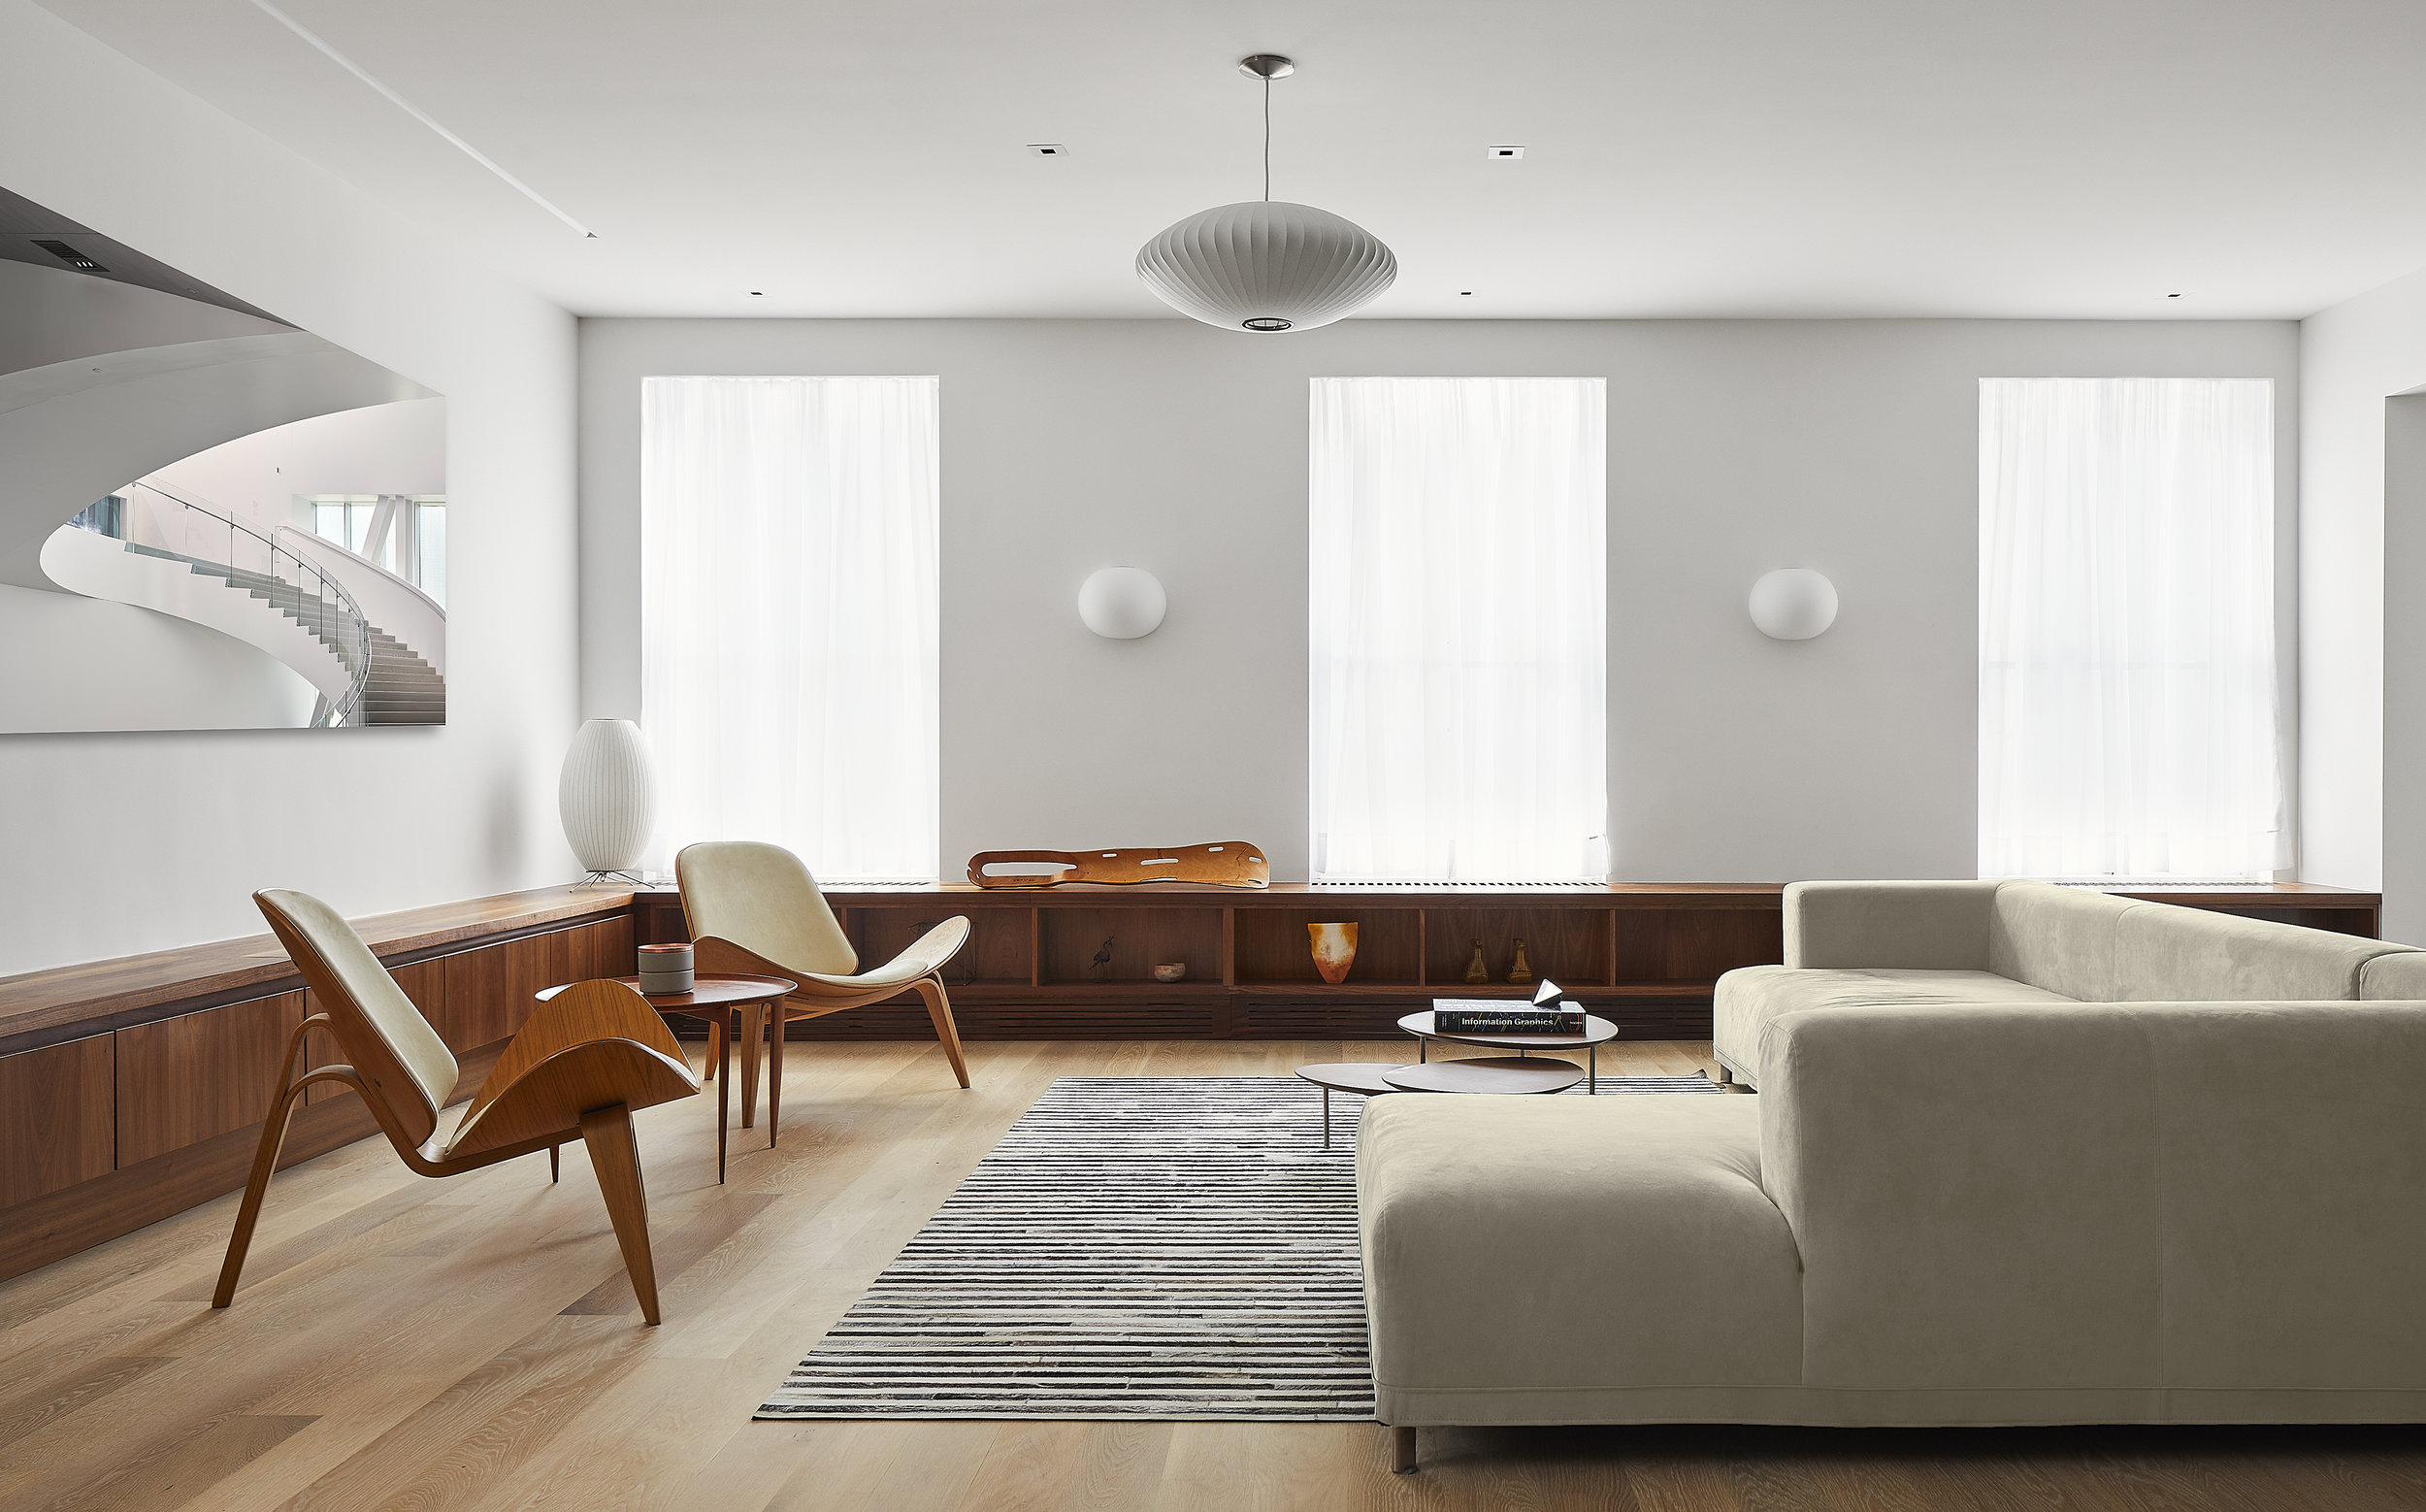 turkel_design_modern_prefab_home_soho_loft_living_room2.jpg